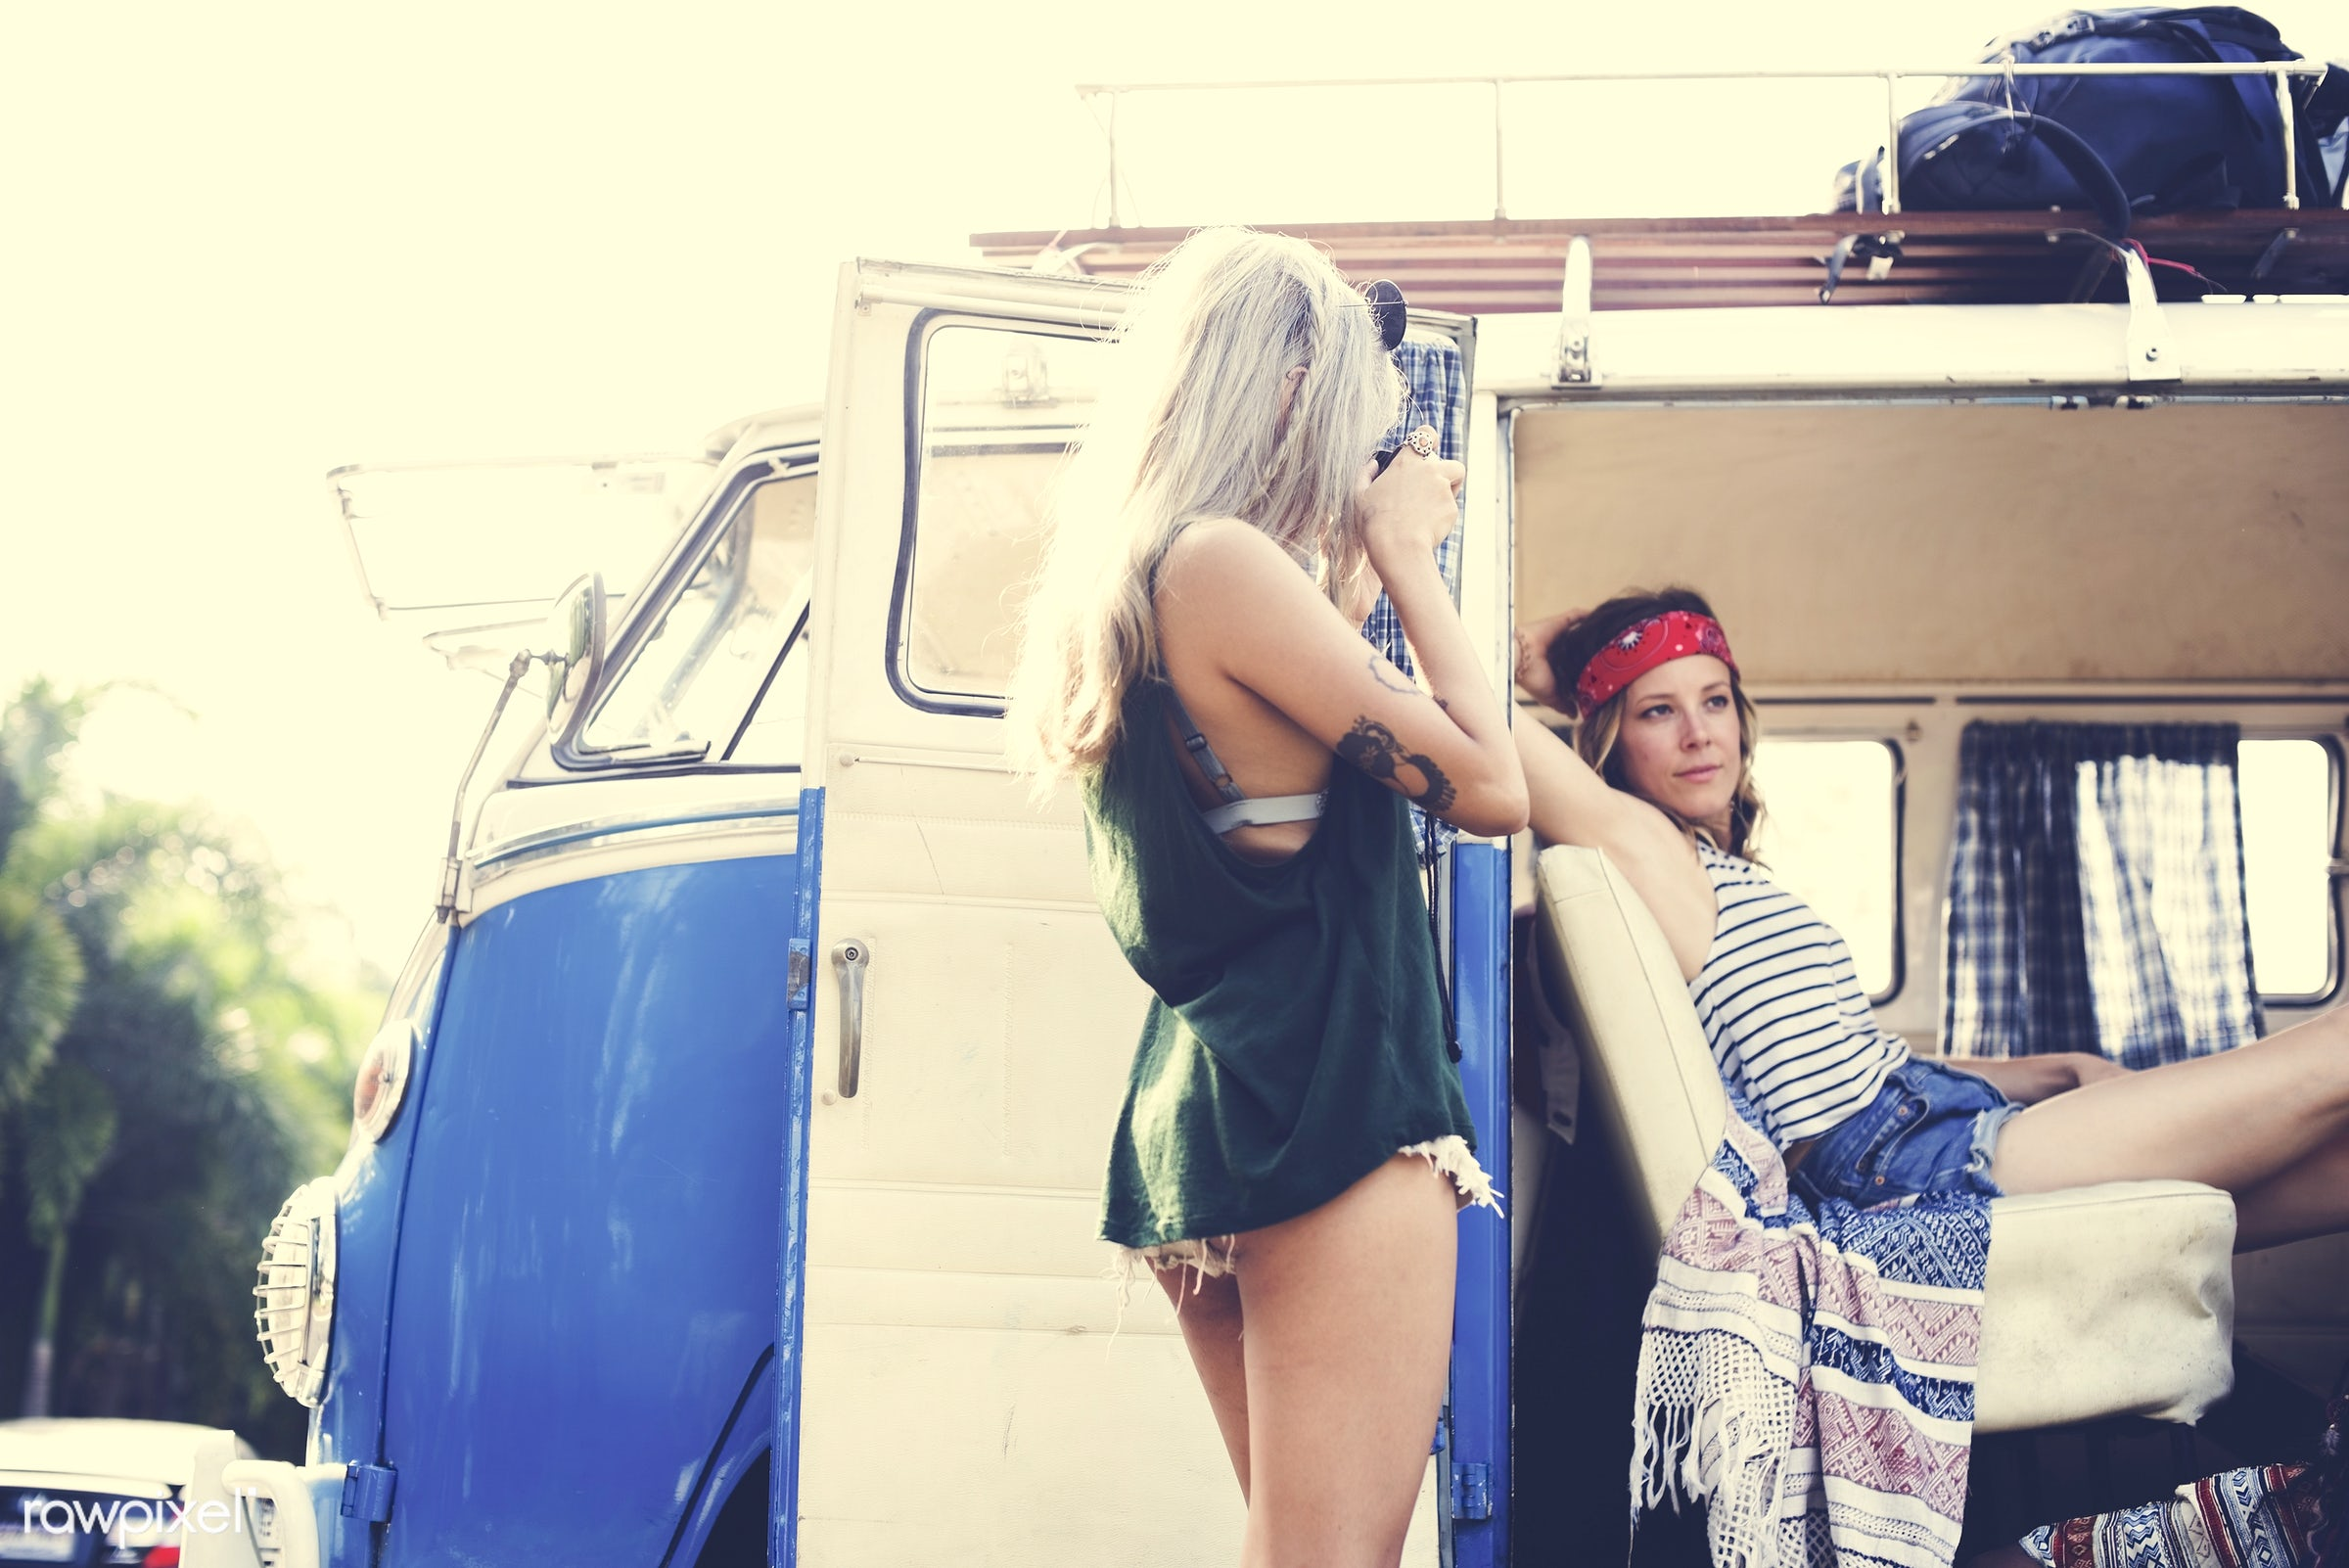 person, photograph, snap, travel, recreation, people, shot, together, wanderlust, friends, hippy, woman, lifestyle, intimate...